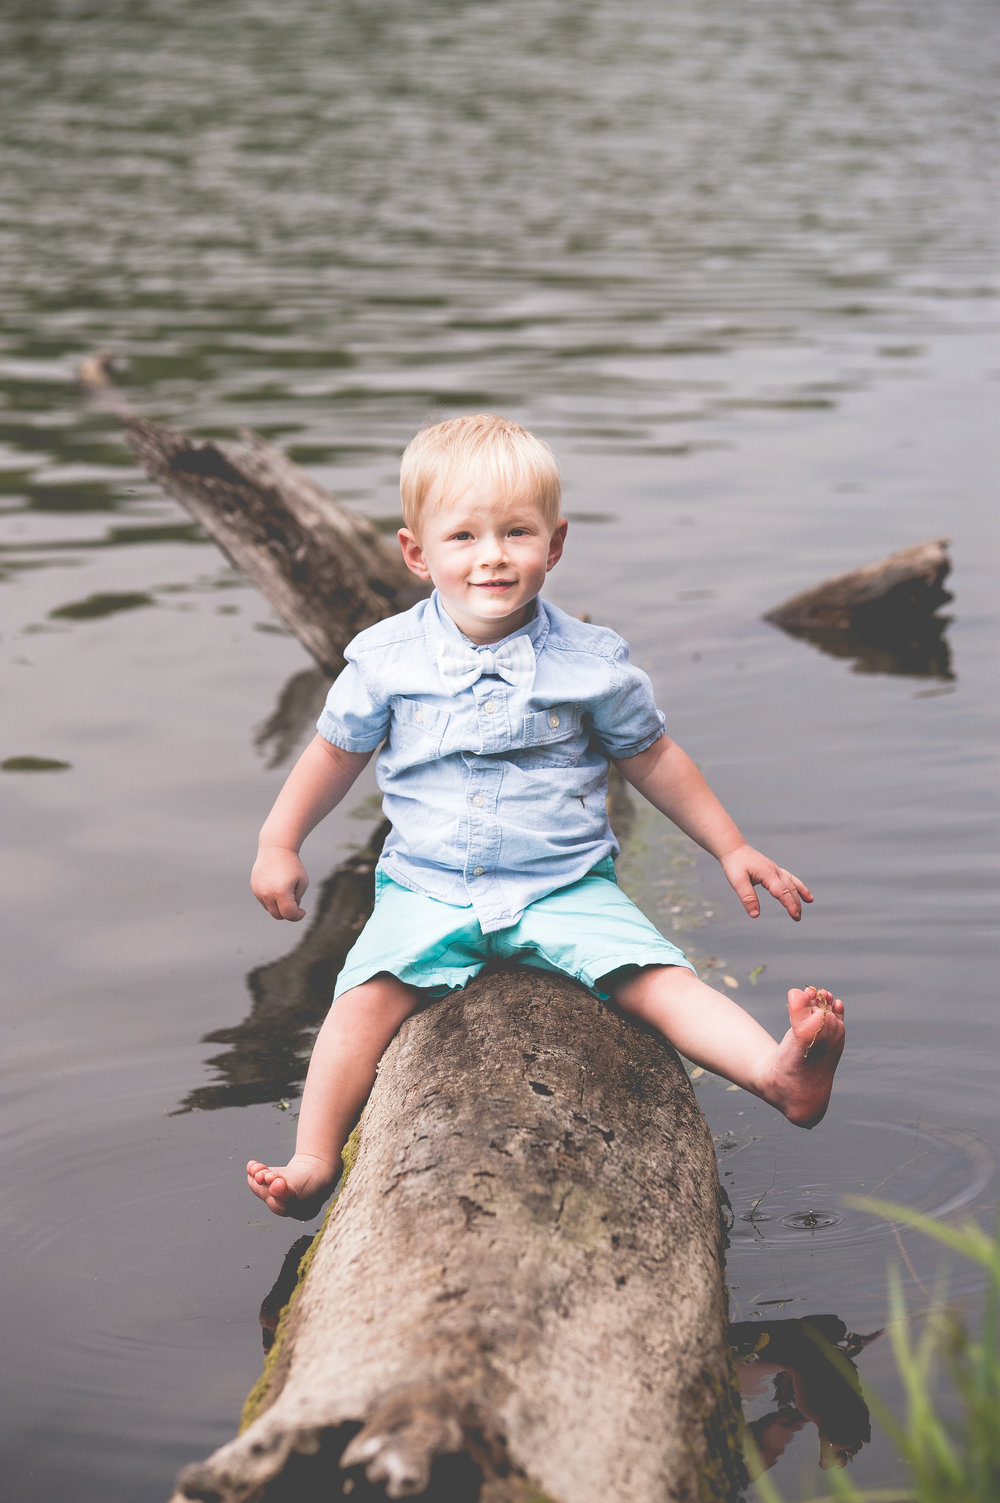 A log, a lake and a little boy. Easy as pie.